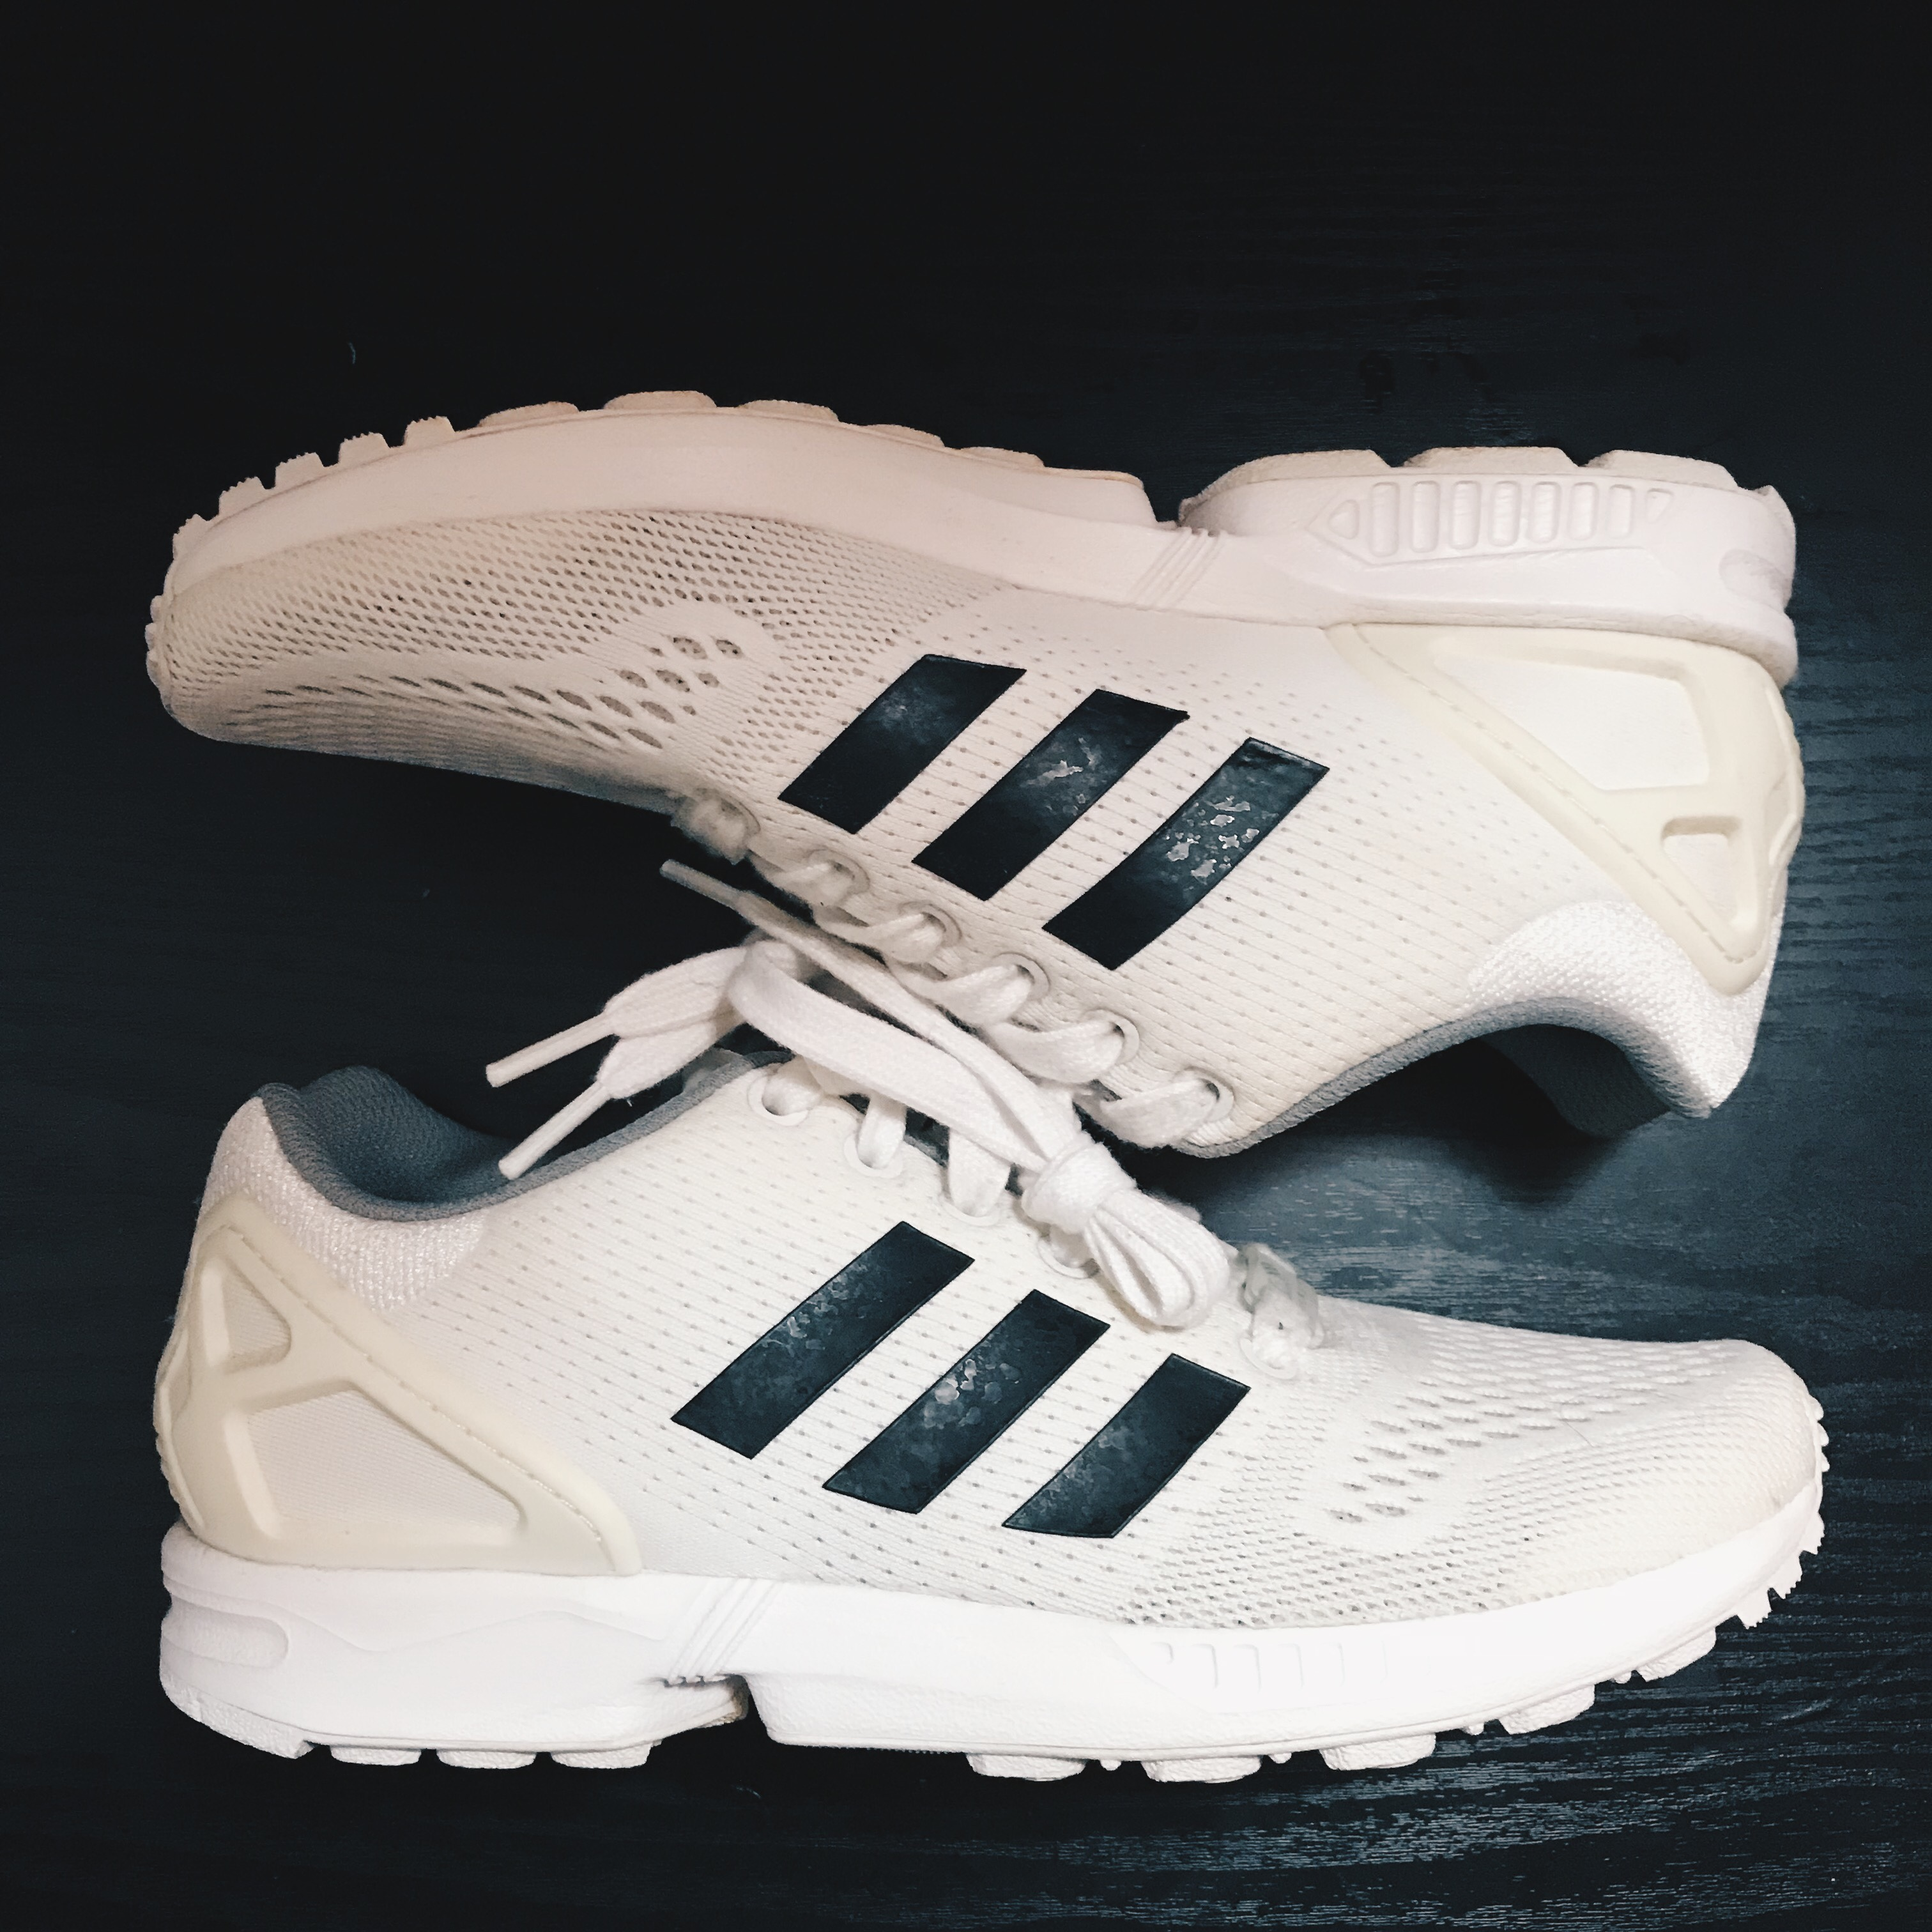 cheap for discount ae0ee bacd7 Adidas ZX Flux Primeknit White Mens US 6 W 7.5.... - Depop